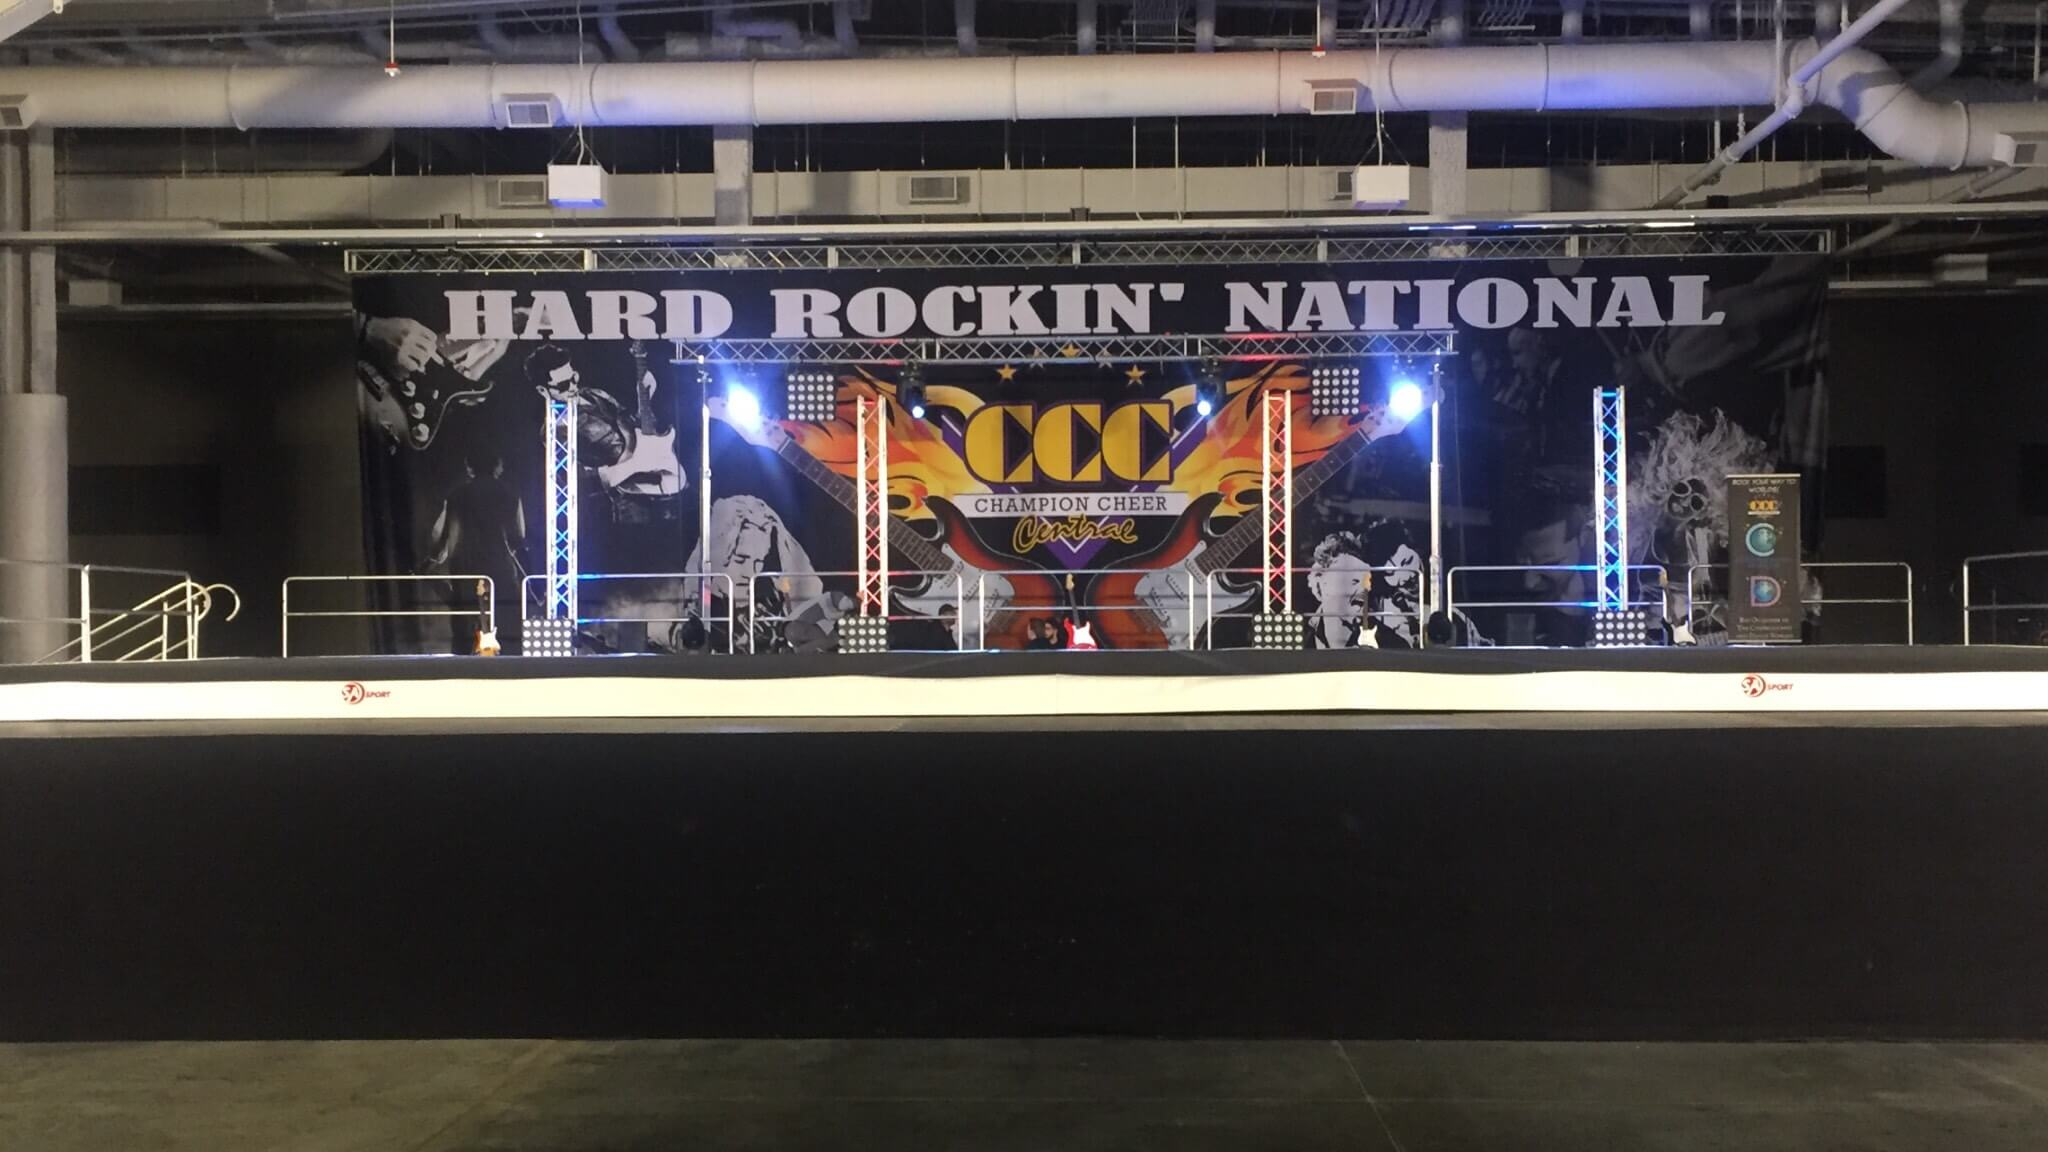 Champion Cheer Central's Hard Rockin' Nationals 2018